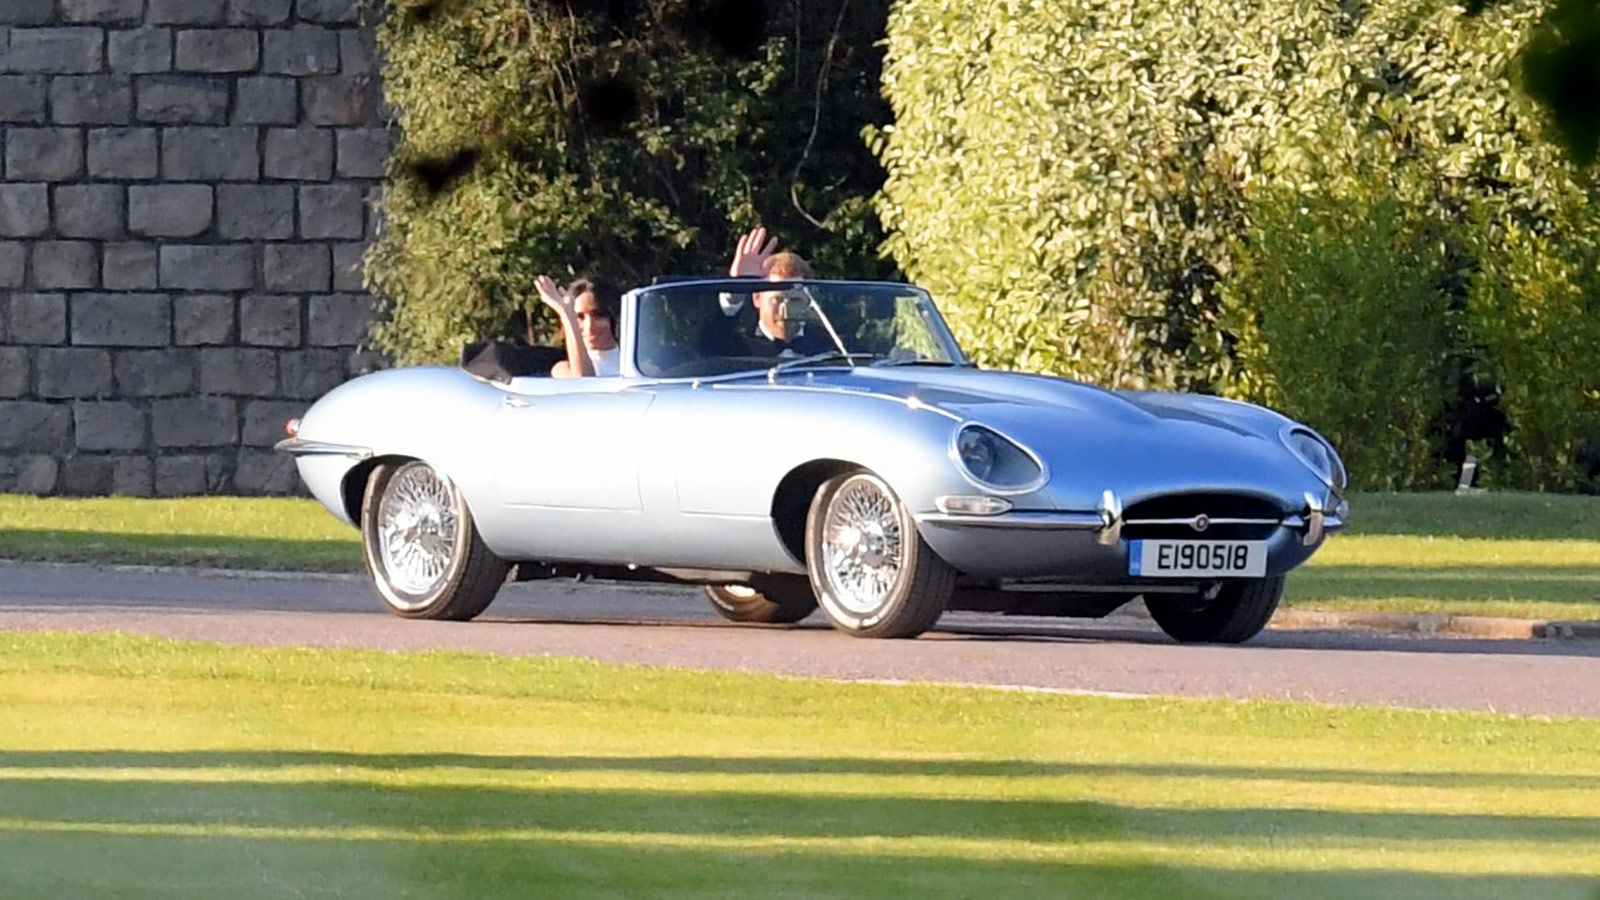 jaguar e-type: royal newly-weds stun crowds with electrifying style